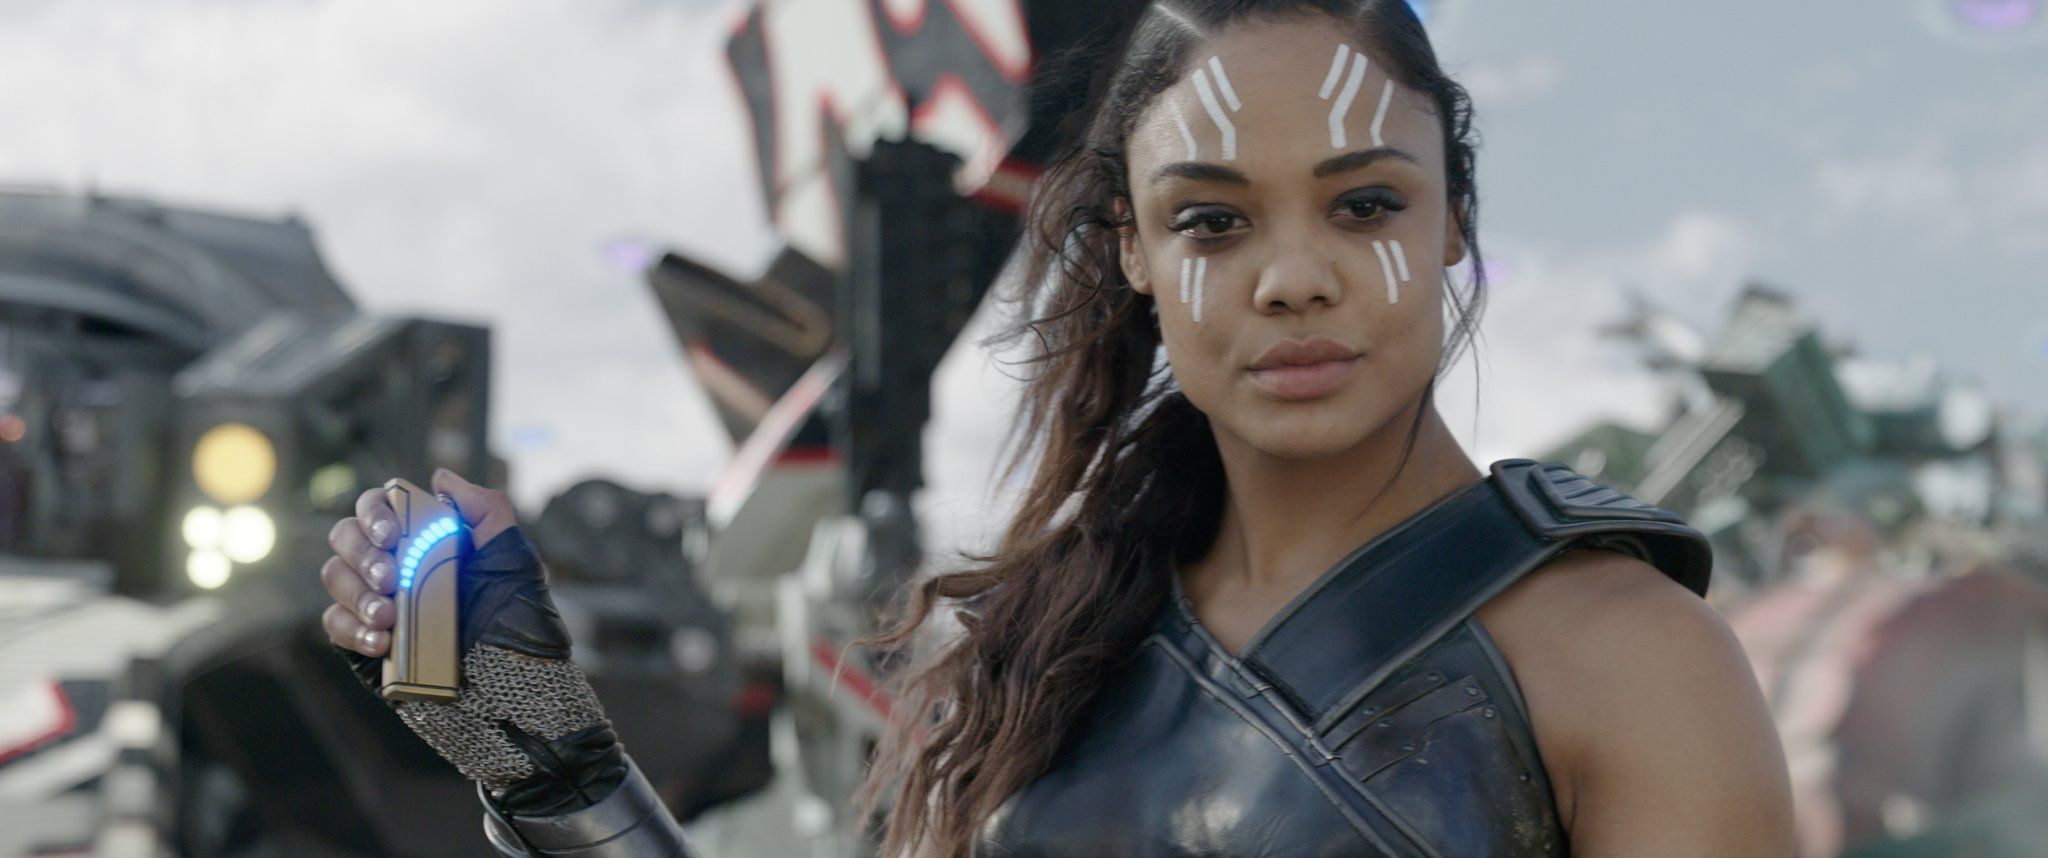 Valkyrie Marvel Actress